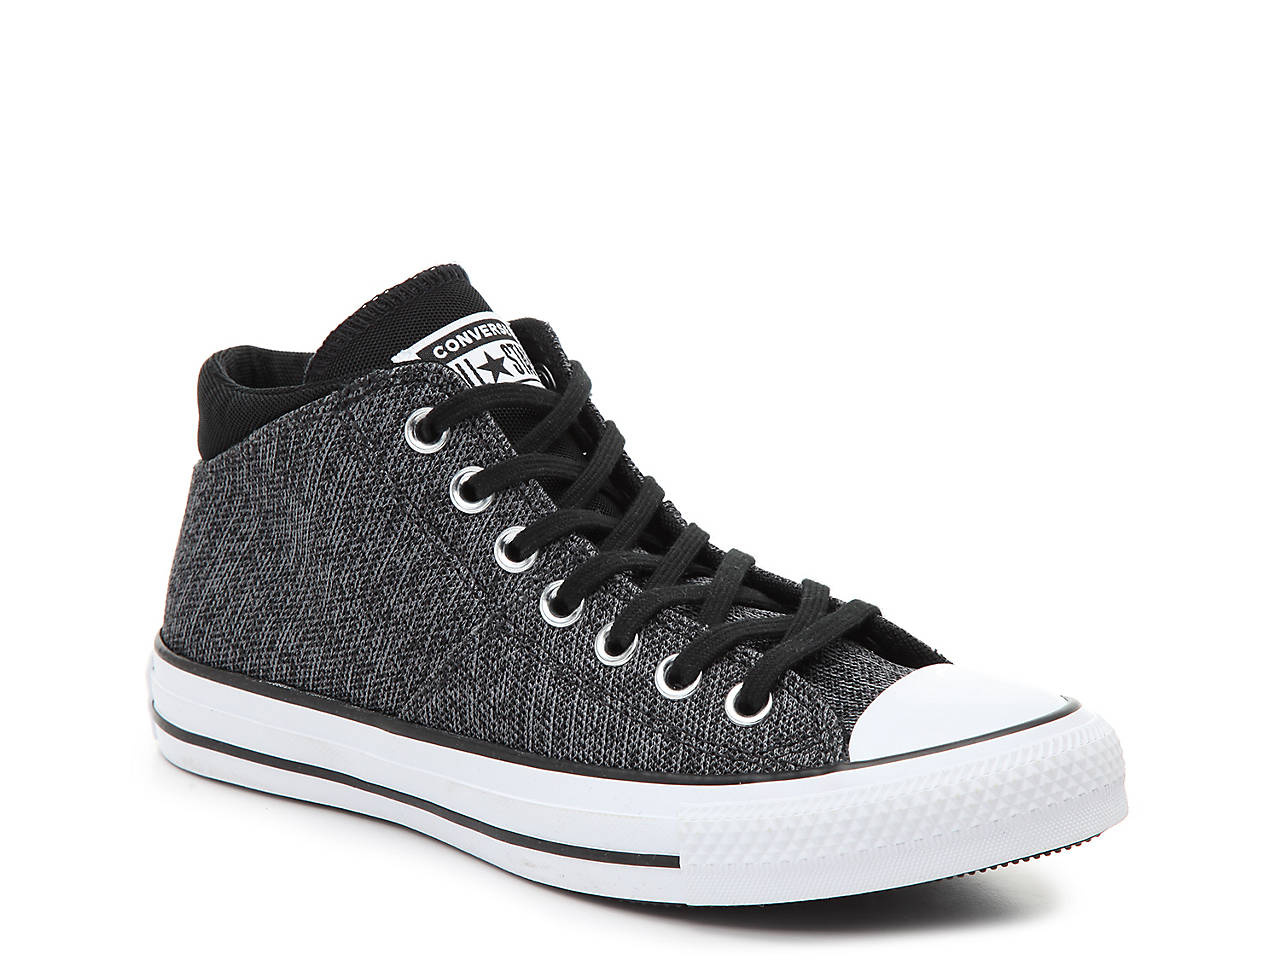 218facdecad55c Converse Chuck Taylor All Star Madison Mid-Top Sneaker - Women s Women s  Shoes